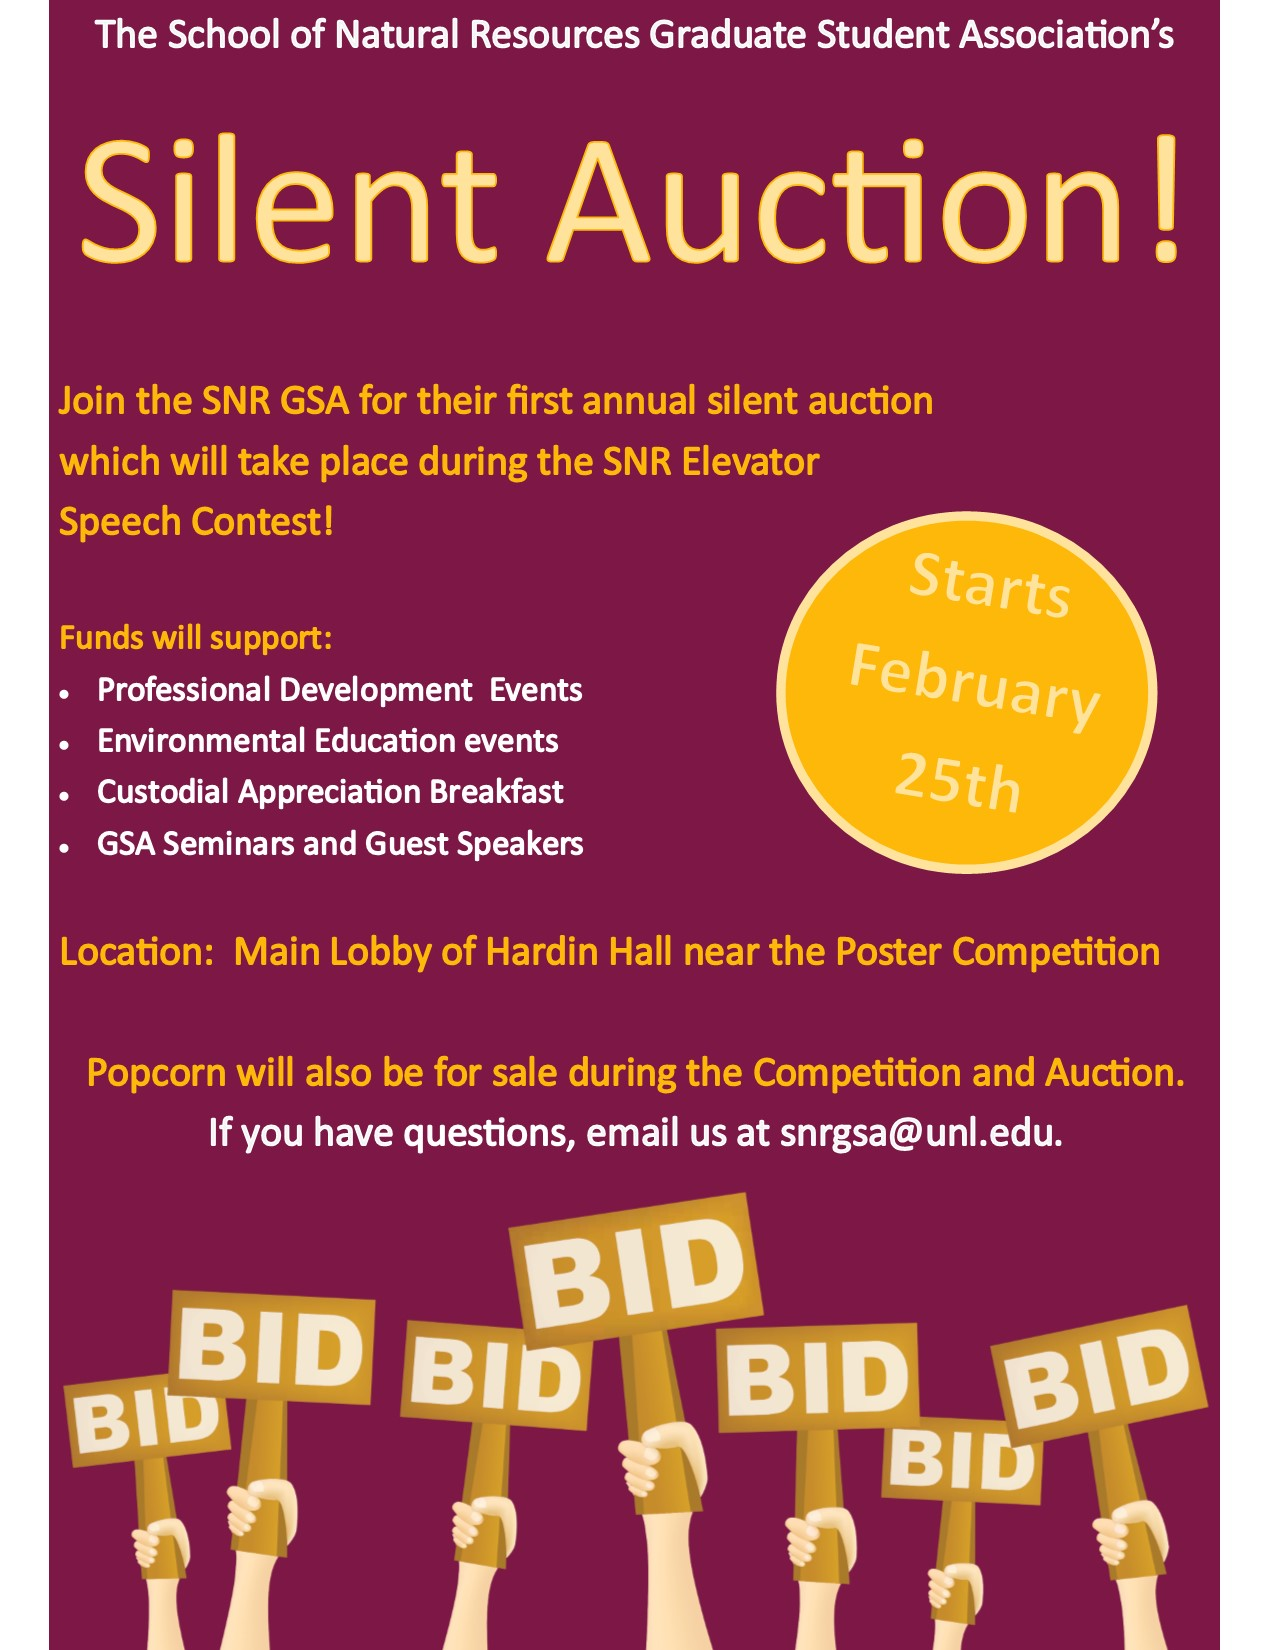 Silent Auction Flyer Snr graduate student association to host silent ...